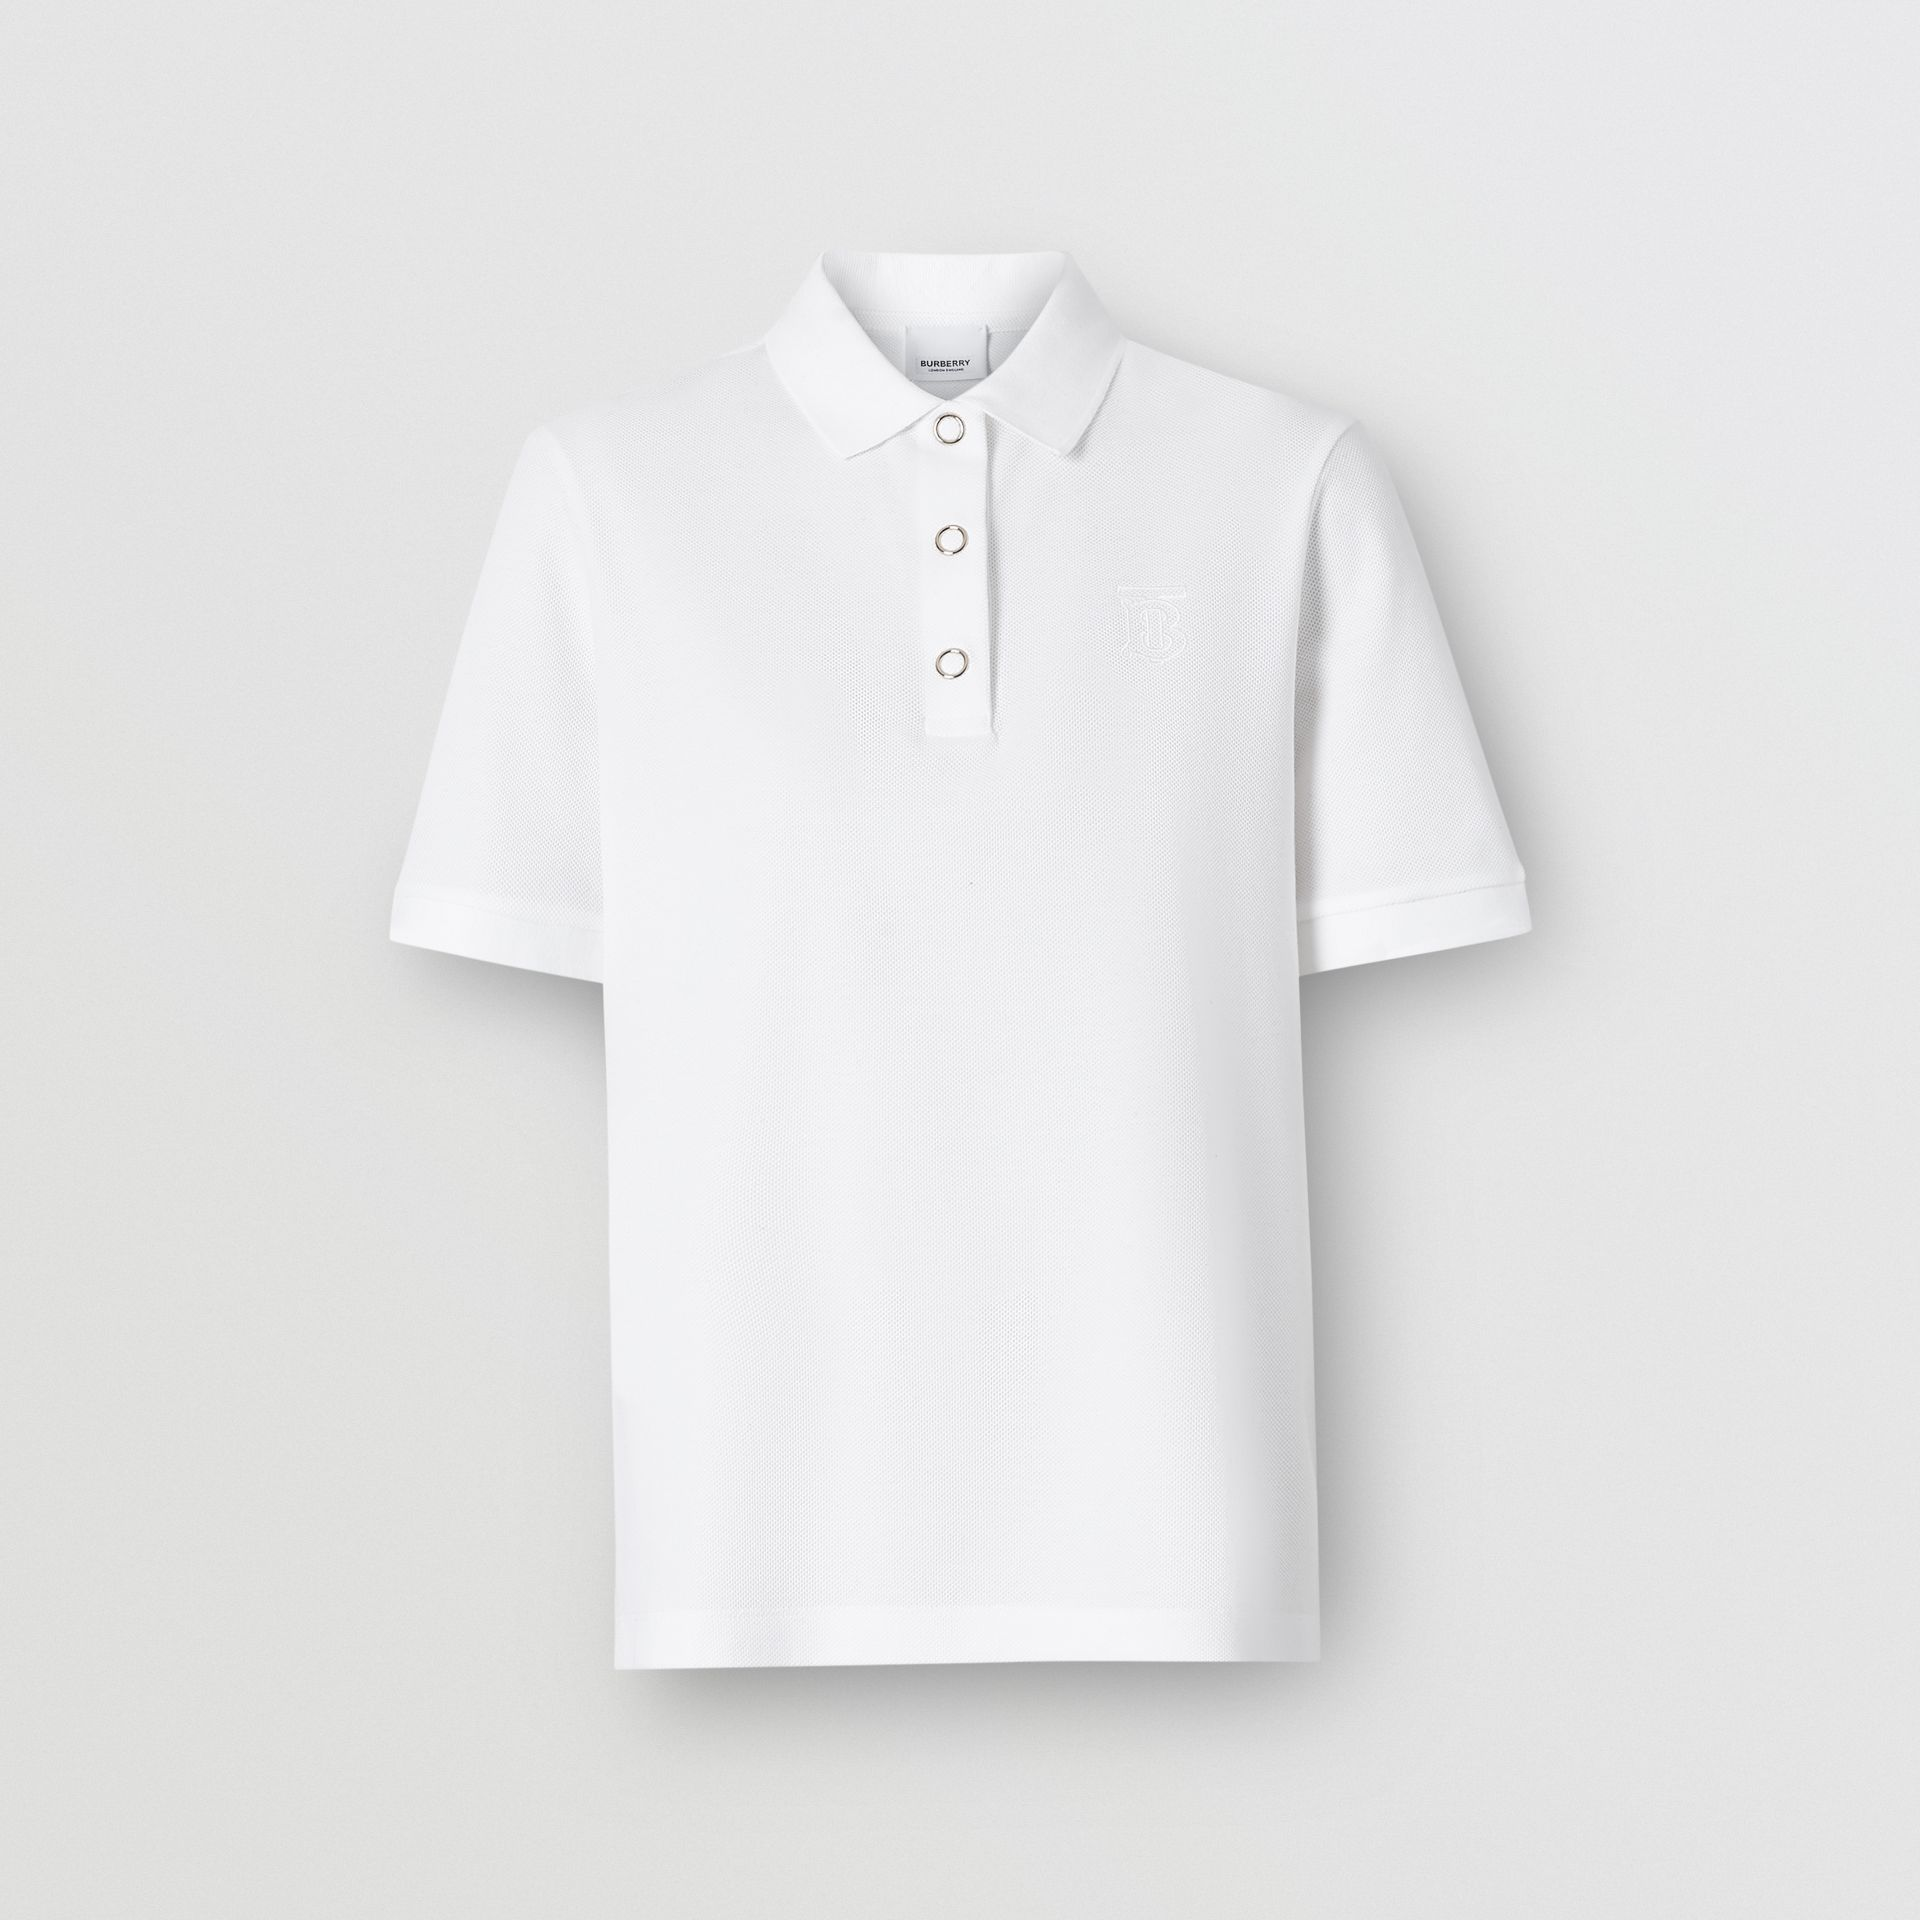 Monogram Motif Cotton Piqué Polo Shirt in White - Women | Burberry Hong Kong S.A.R - gallery image 3